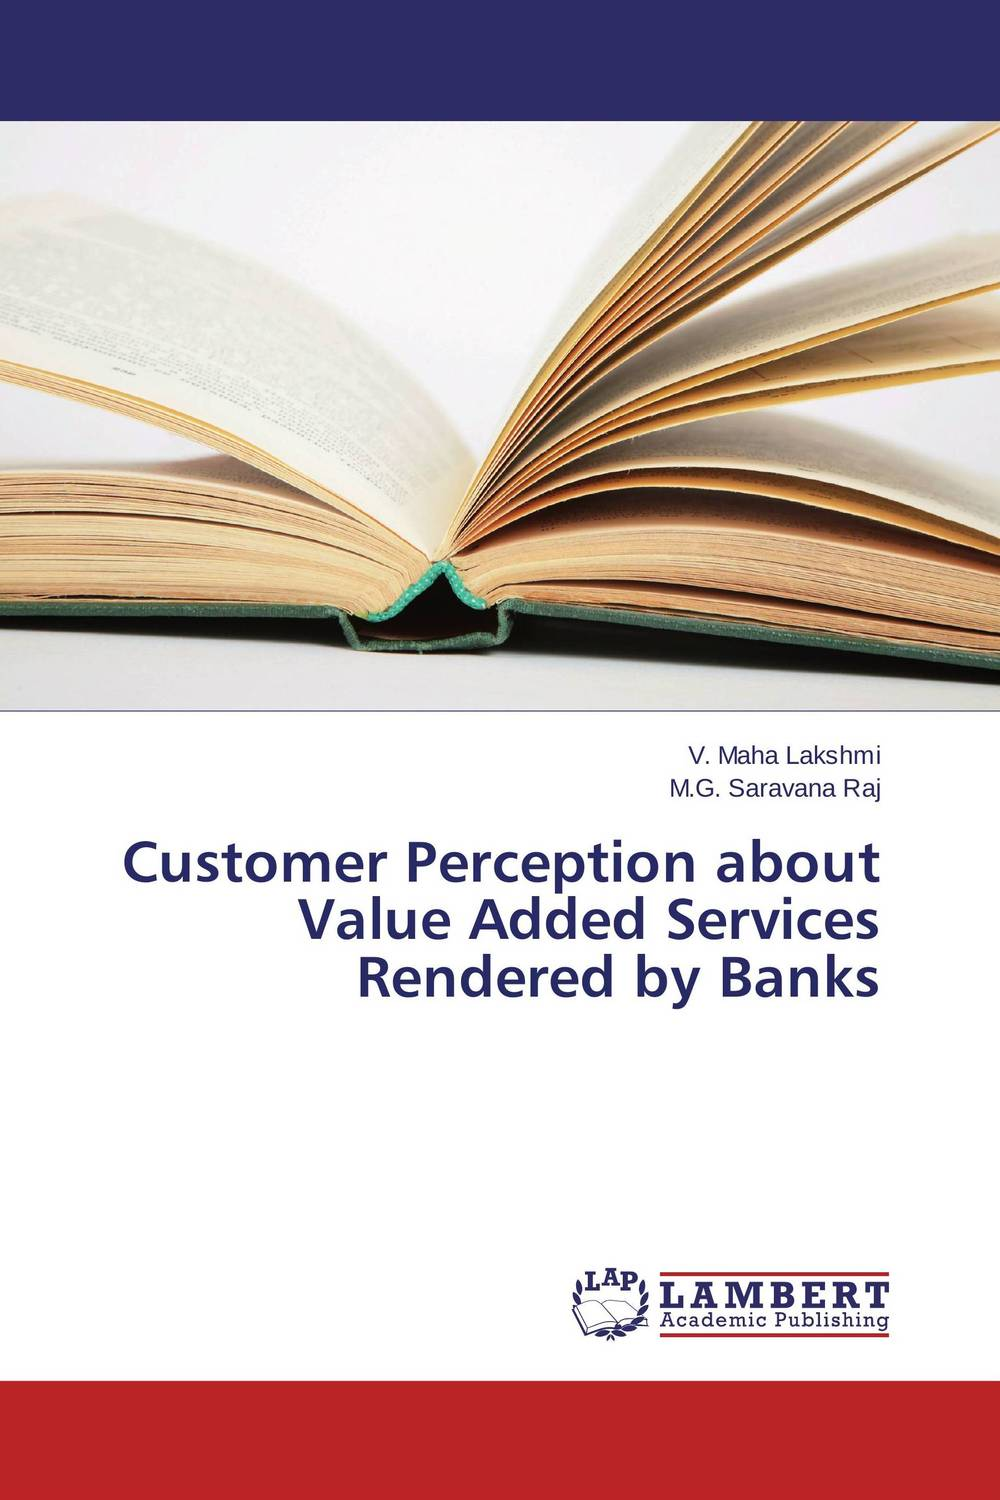 Customer Perception about Value Added Services Rendered by Banks adding customer value through effective distribution strategy